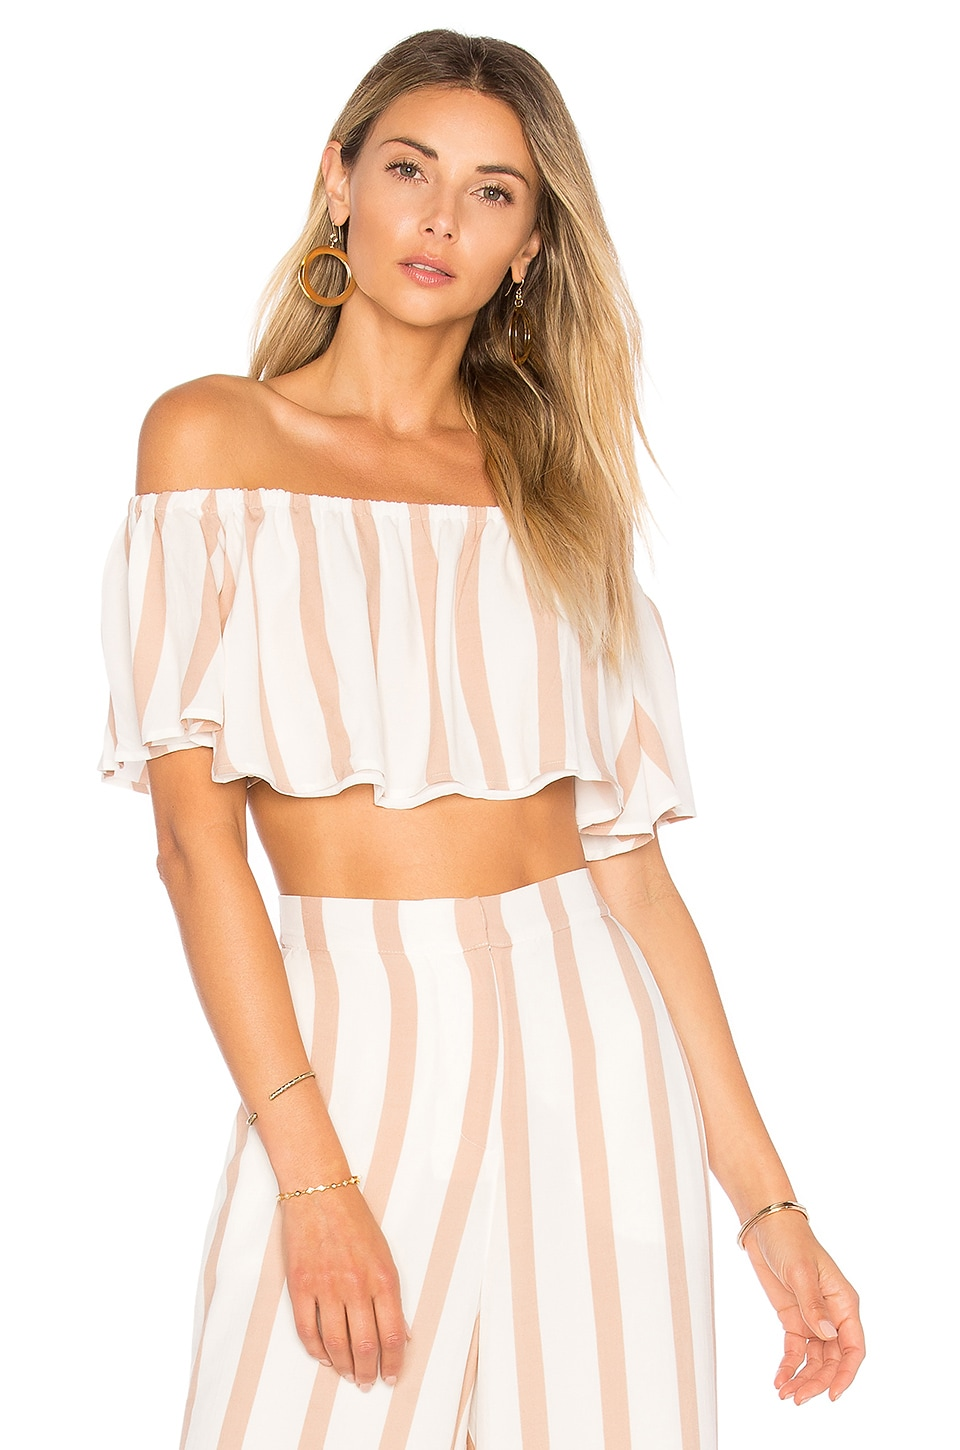 House of Harlow 1960 X REVOLVE Bree Crop Top in Barley